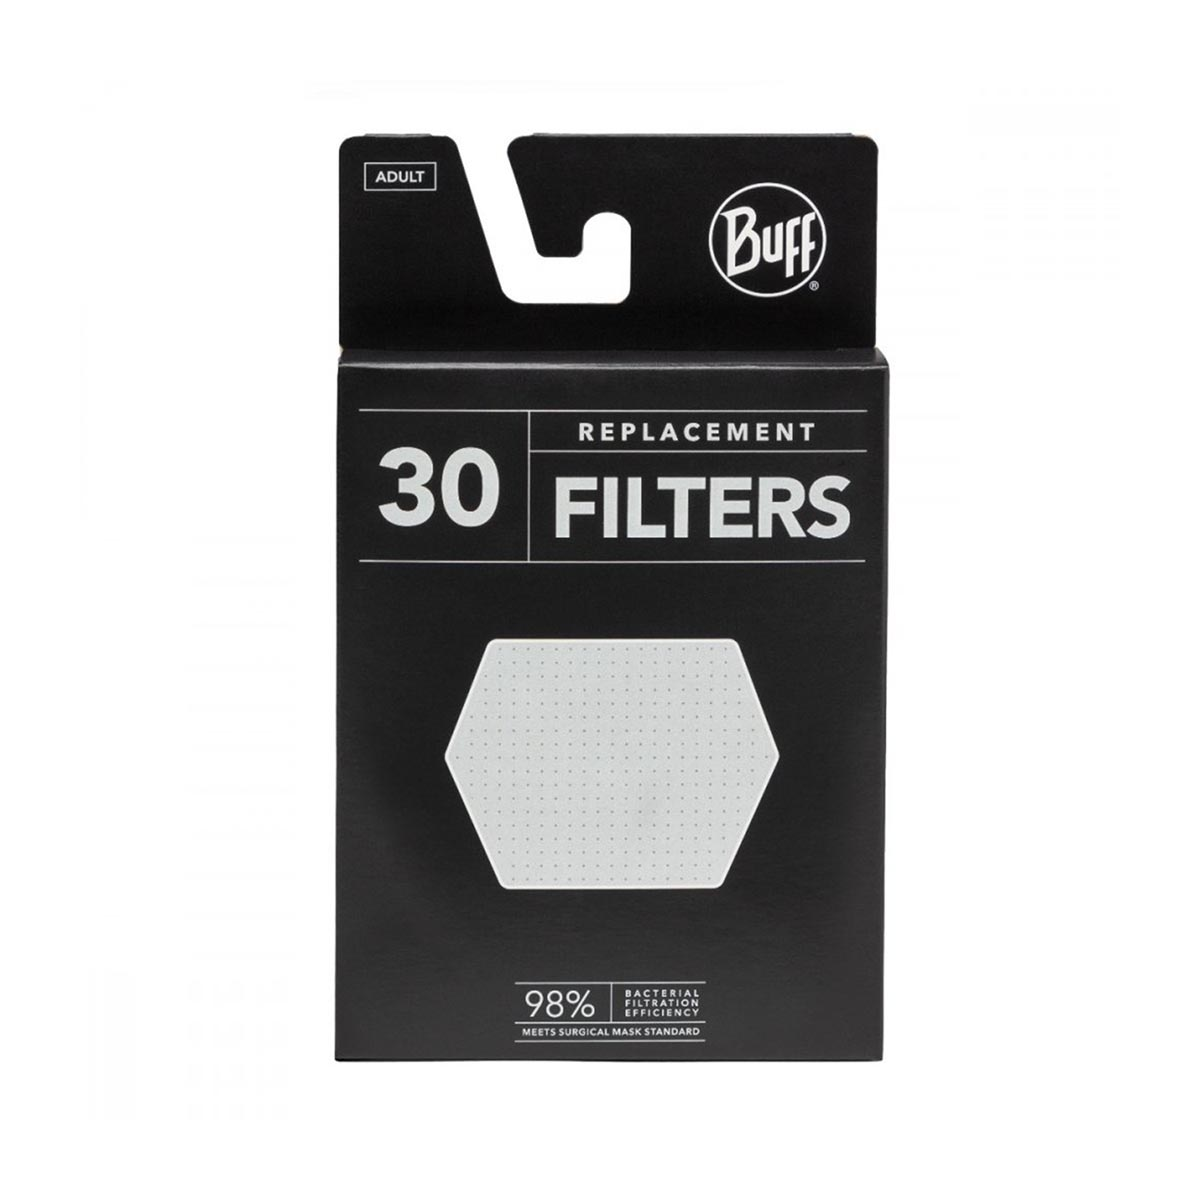 BUFF - 30 FILTER PACK ADULT